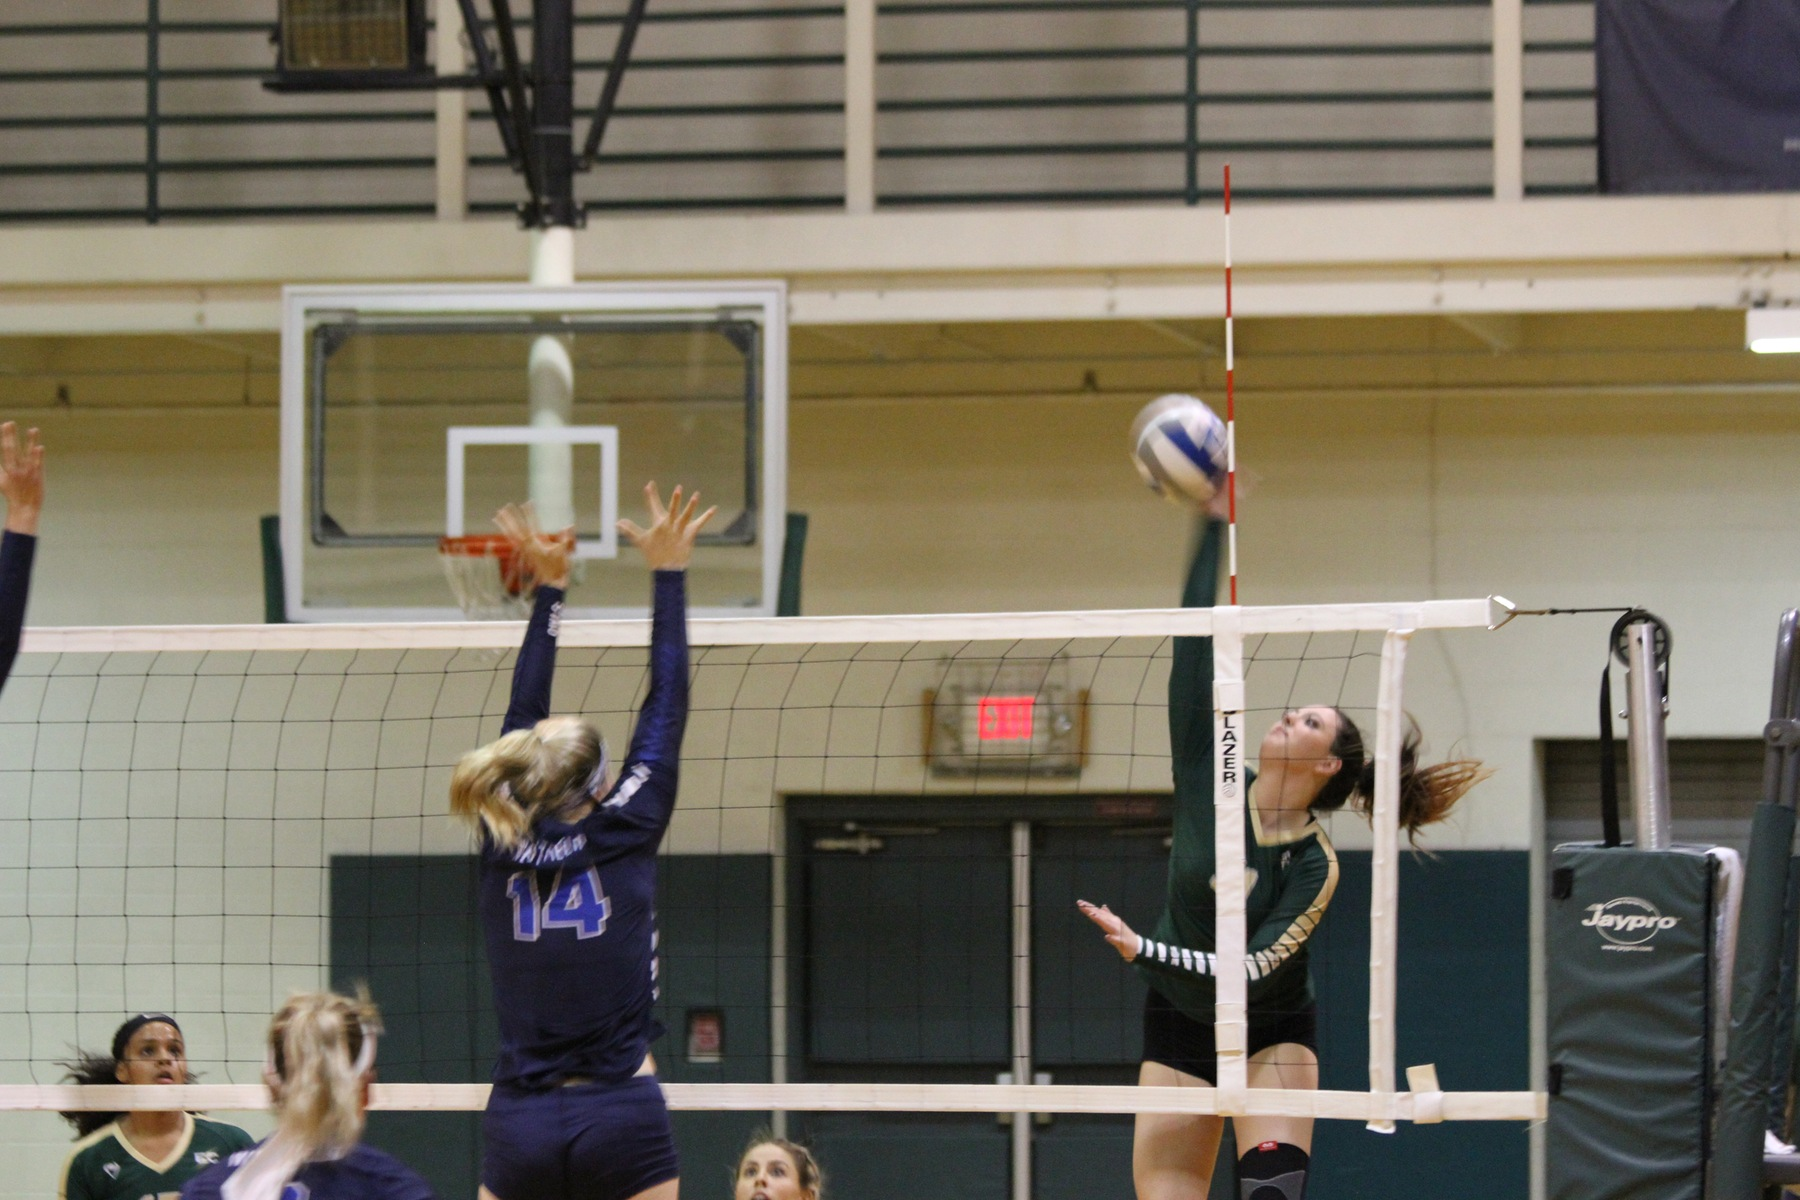 Women's Volleyball Advances To Title Match With Comeback Over Southern Vermont